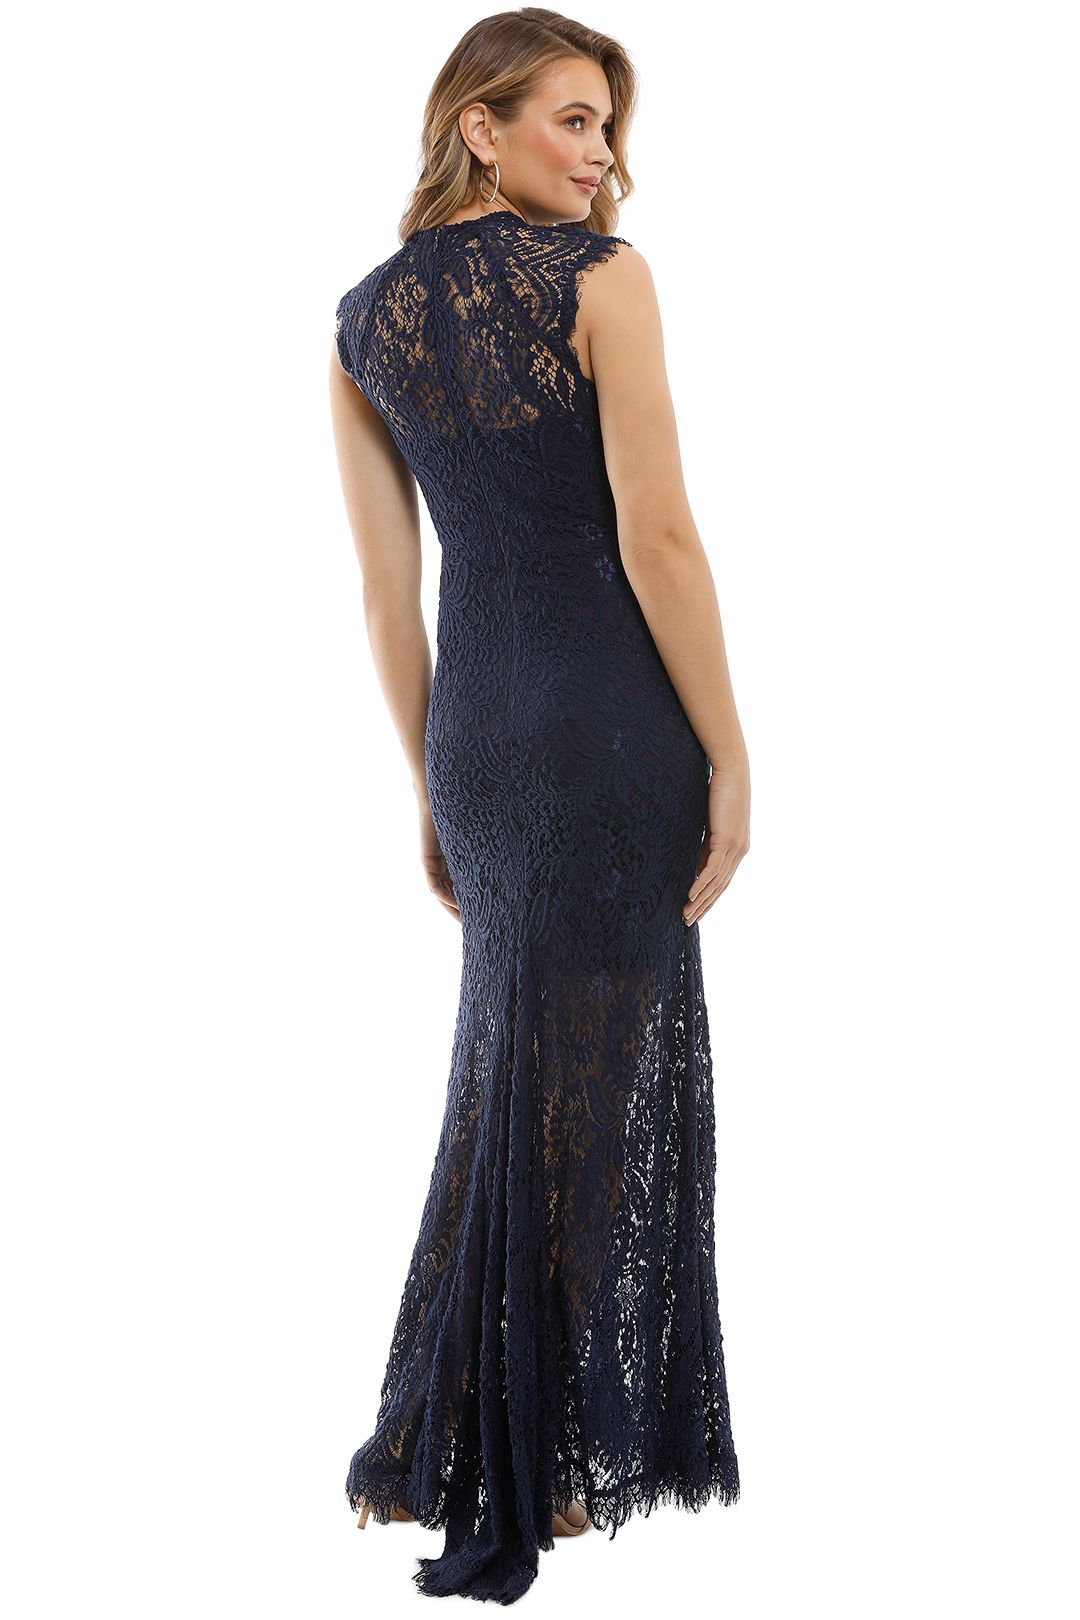 Elle Zeitoune - Demi Gown - Navy - Back